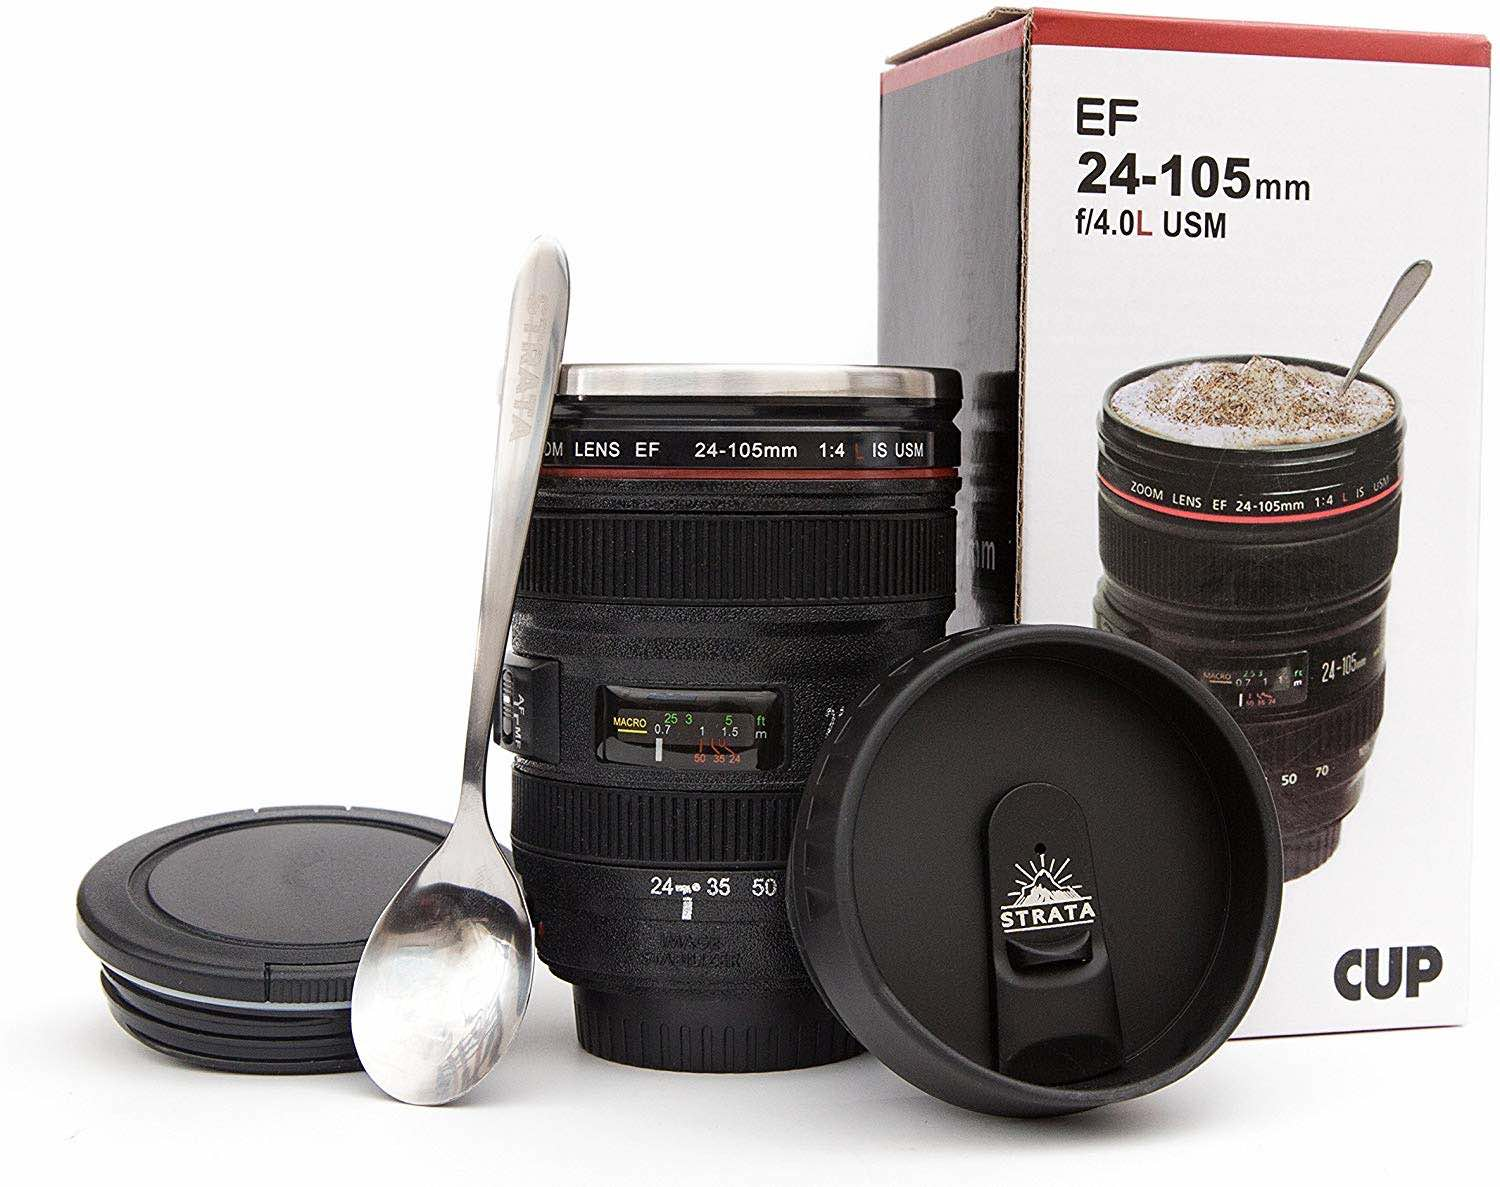 STRATA CUPS Camera Lens Coffee Mug - Best Gifts for Photographers